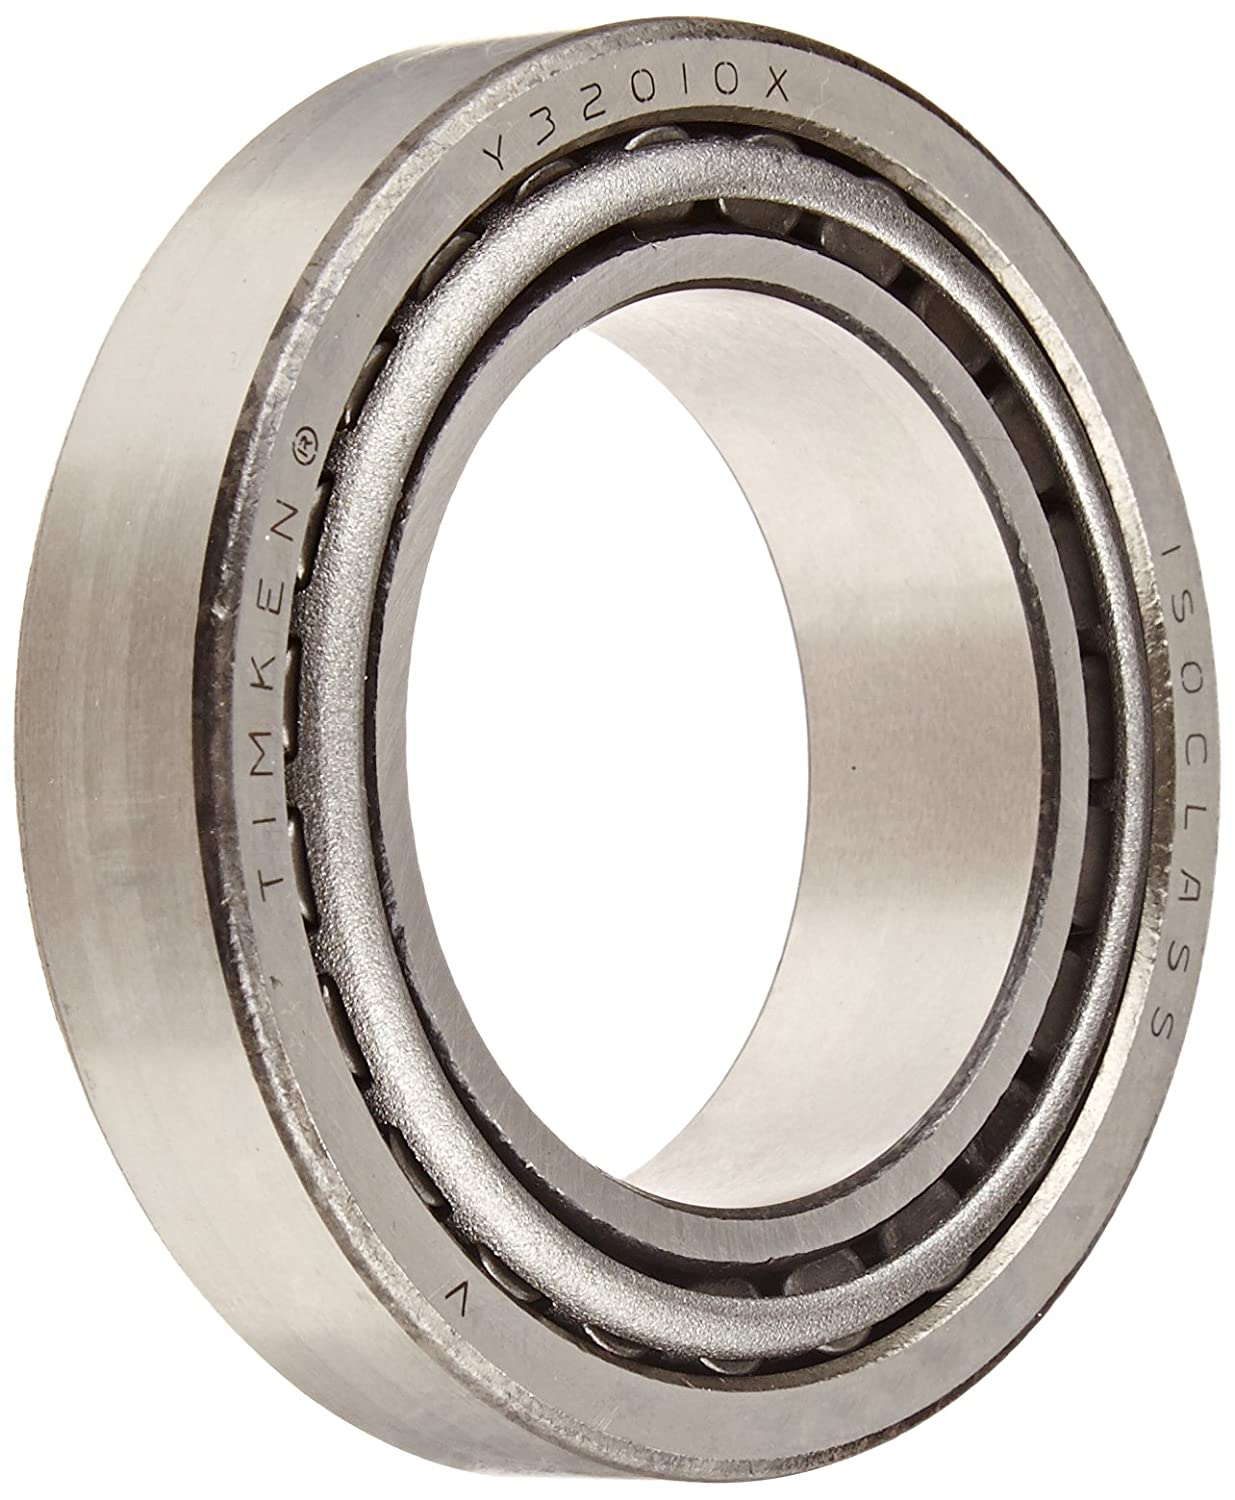 Timken 32010X90KA1 Tapered Roller Bearing Cone and Cup Set, Steel, Metric, 50mm ID, 80mm OD, 20mm Cup Width